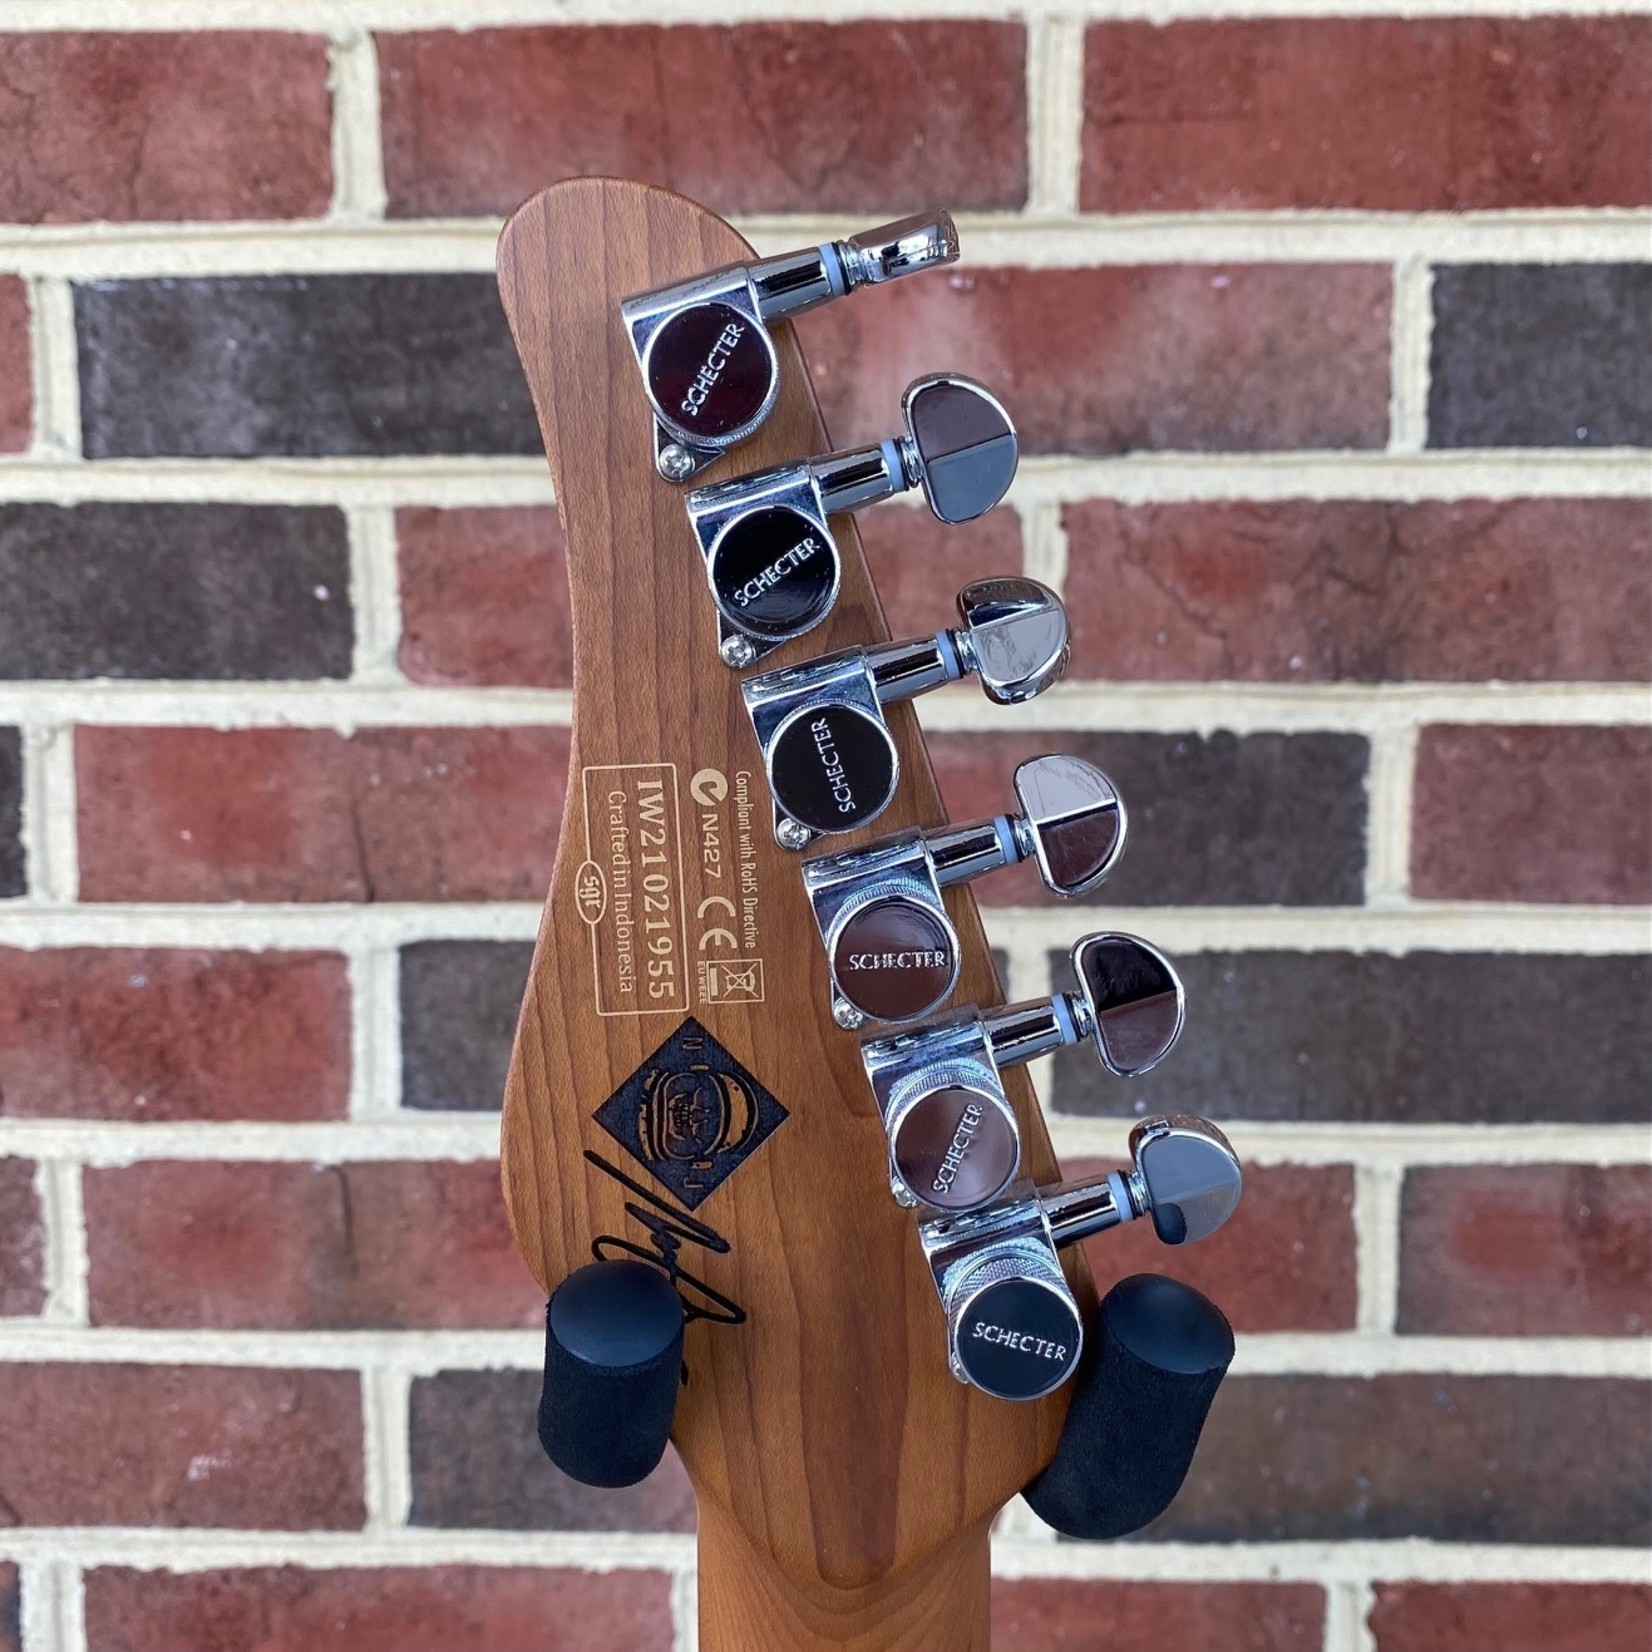 Schecter Guitar Research Schecter Nick Johnston Traditional, Atomic Ink, Roasted Maple Neck, Roasted Maple Fretboard